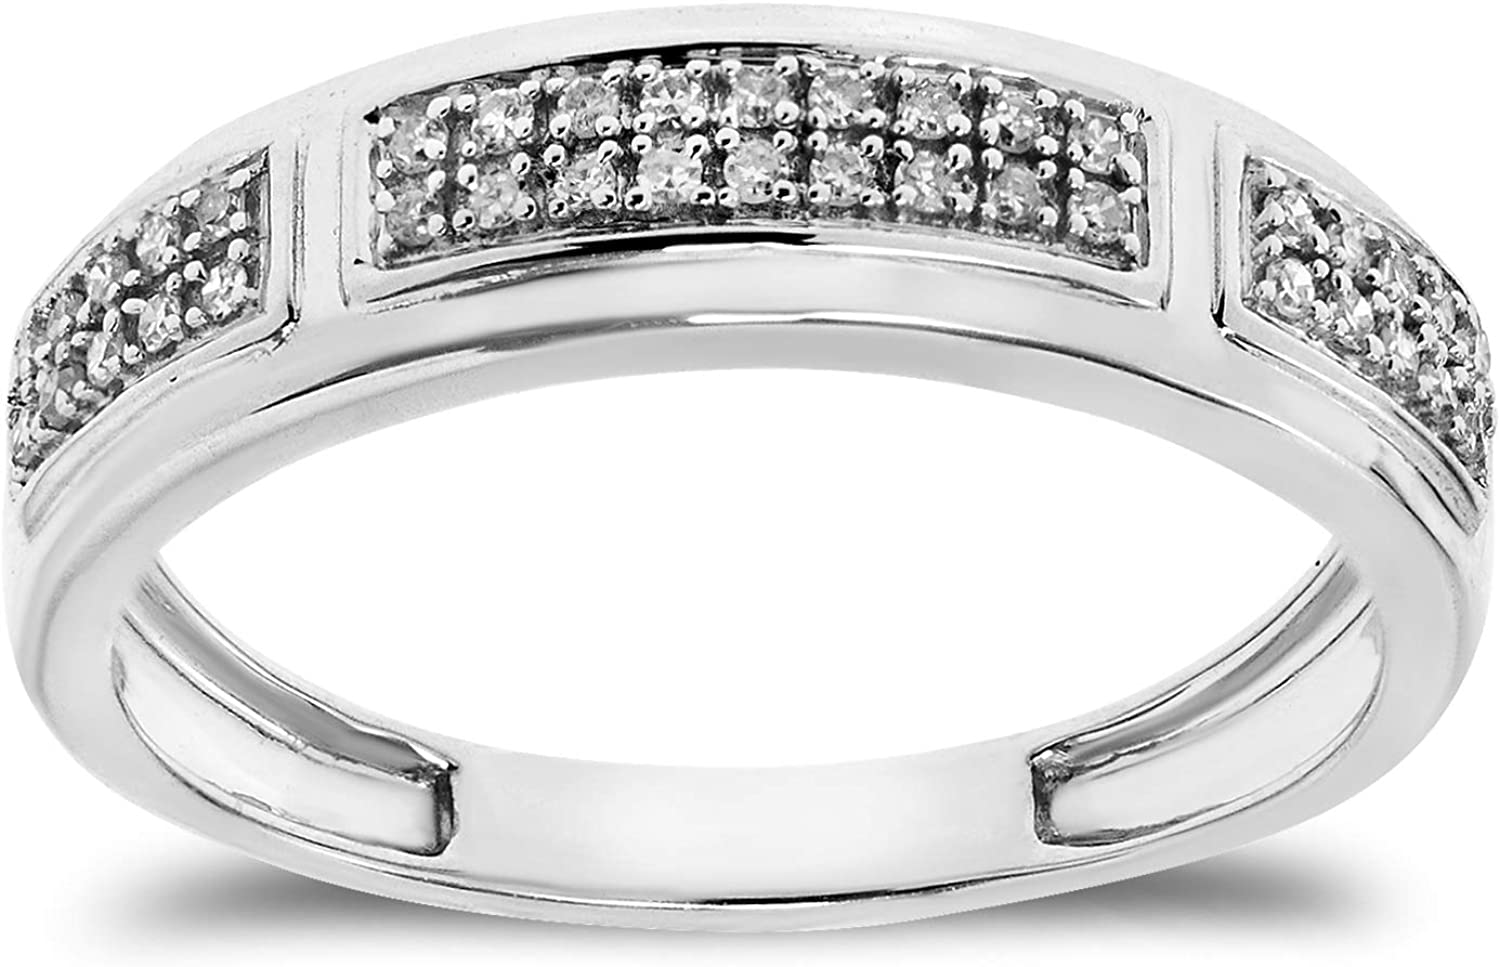 service Buy Jewels 925 Sterling Silver Ring OFFicial store Natural Band Diamond with fo